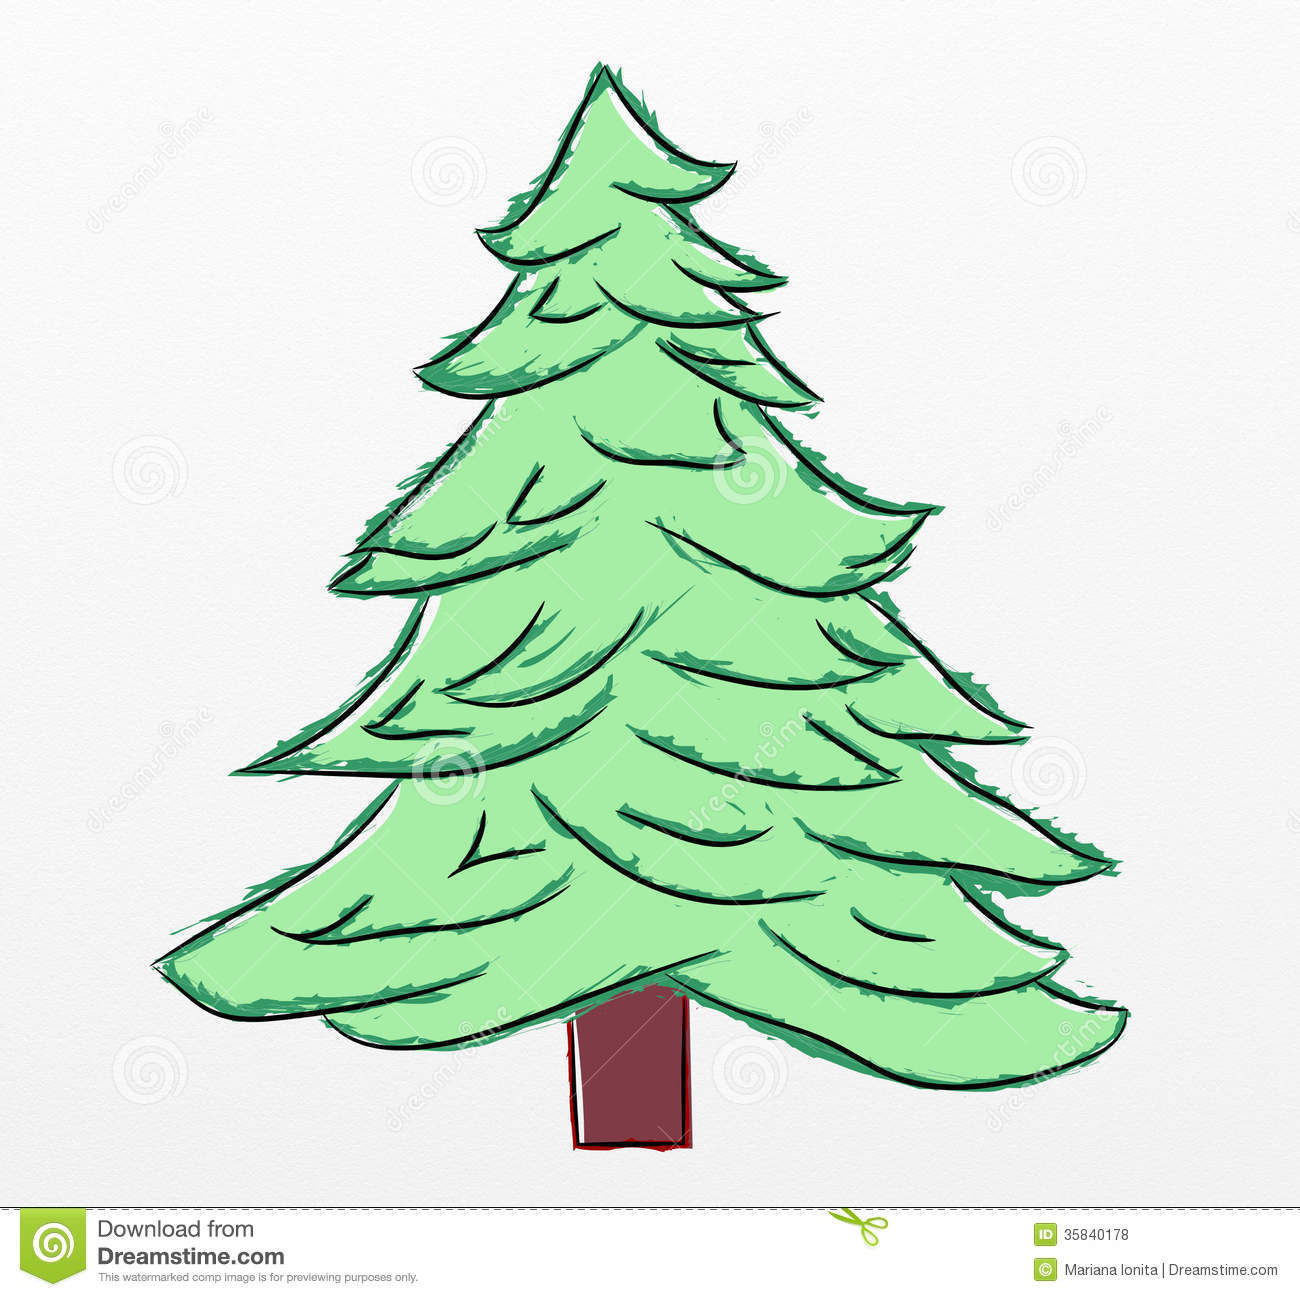 Christmas Tree Sketch Stock Illustration. Illustration Of Tree - 35840178